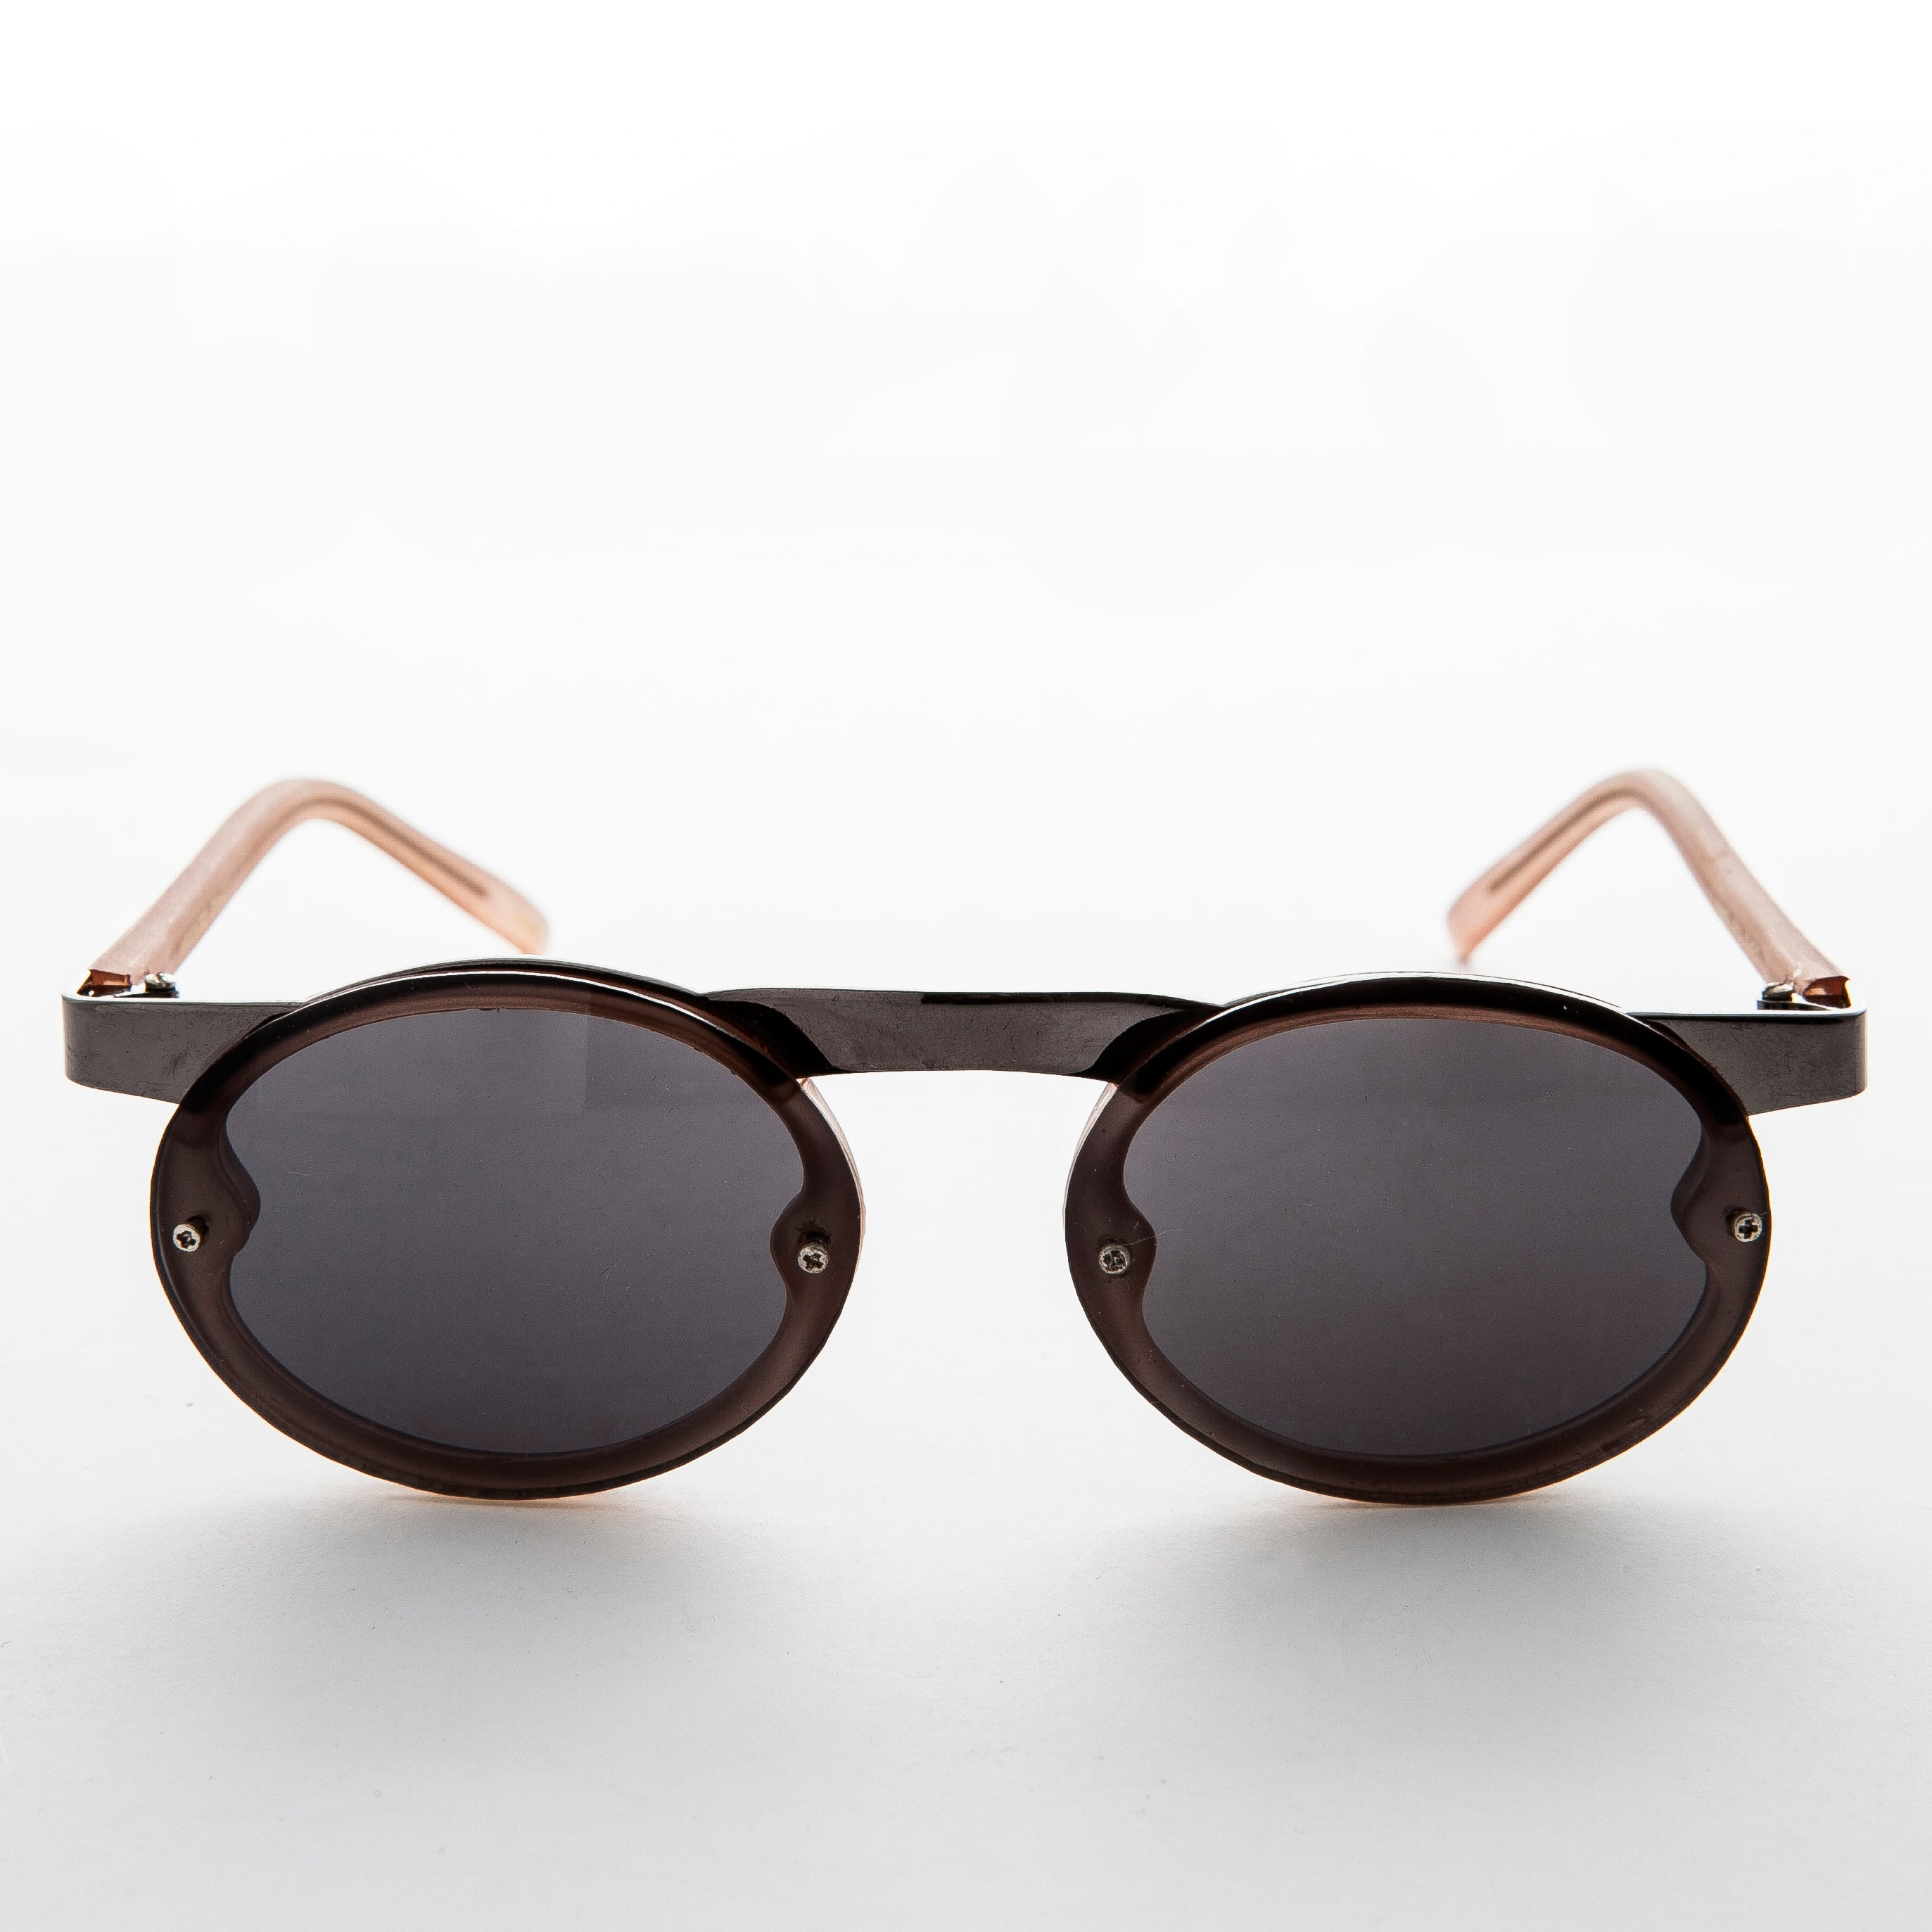 oval lens with brown and black frame vintage steampunk sunglasses